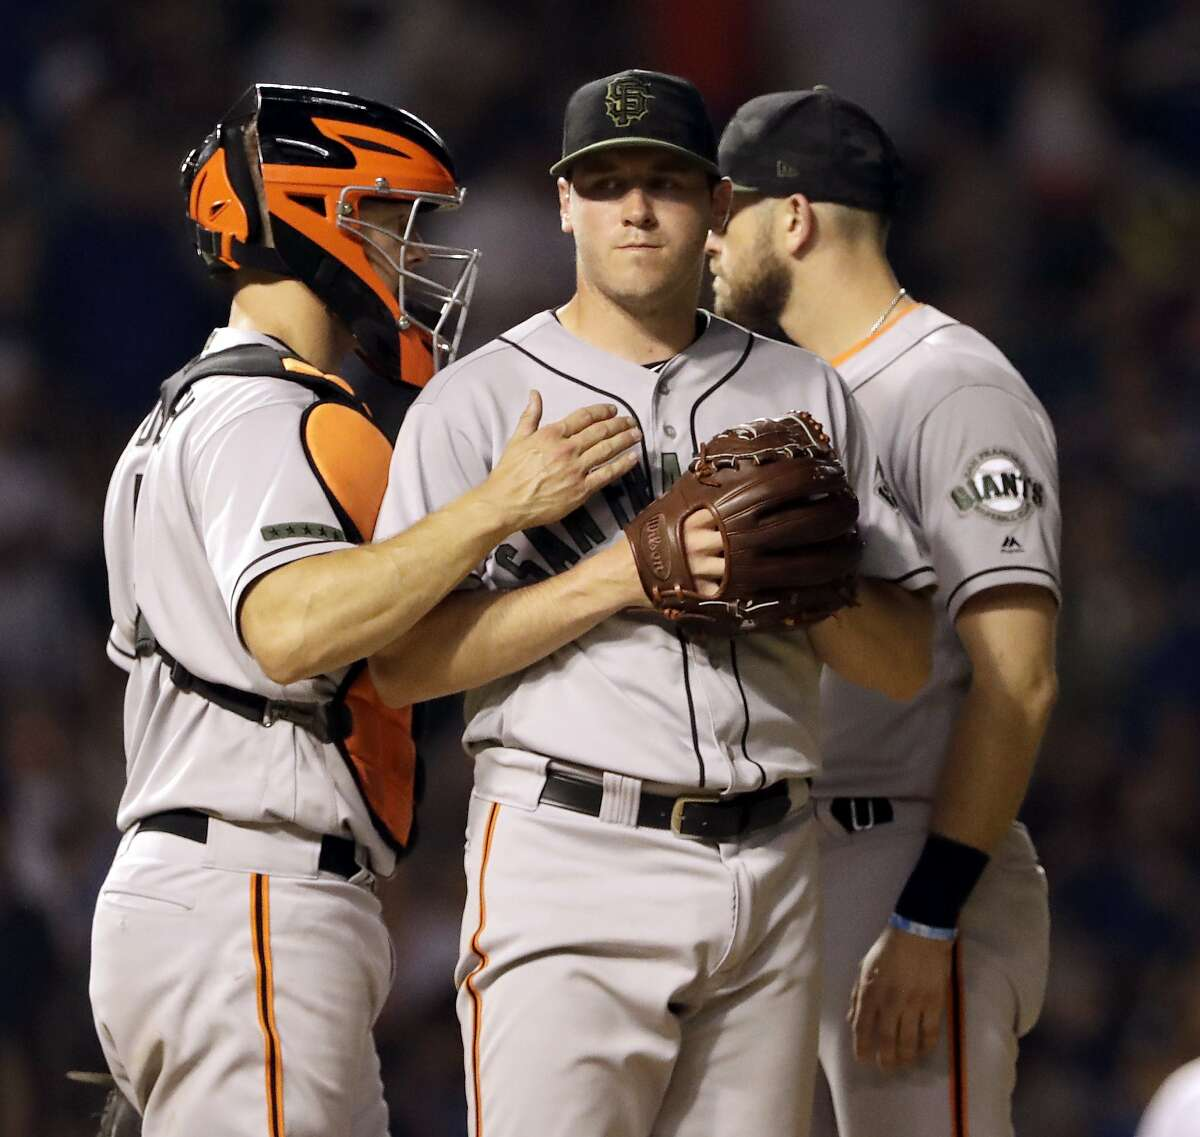 San Francisco Giants starting pitcher Ty Blach, center, reacts as he listens to catcher Nick Hundley, left, and third baseman Evan Longoria during the fourth inning of a baseball game against the Chicago Cubs in Chicago, Sunday, May 27, 2018. (AP Photo/Nam Y. Huh)